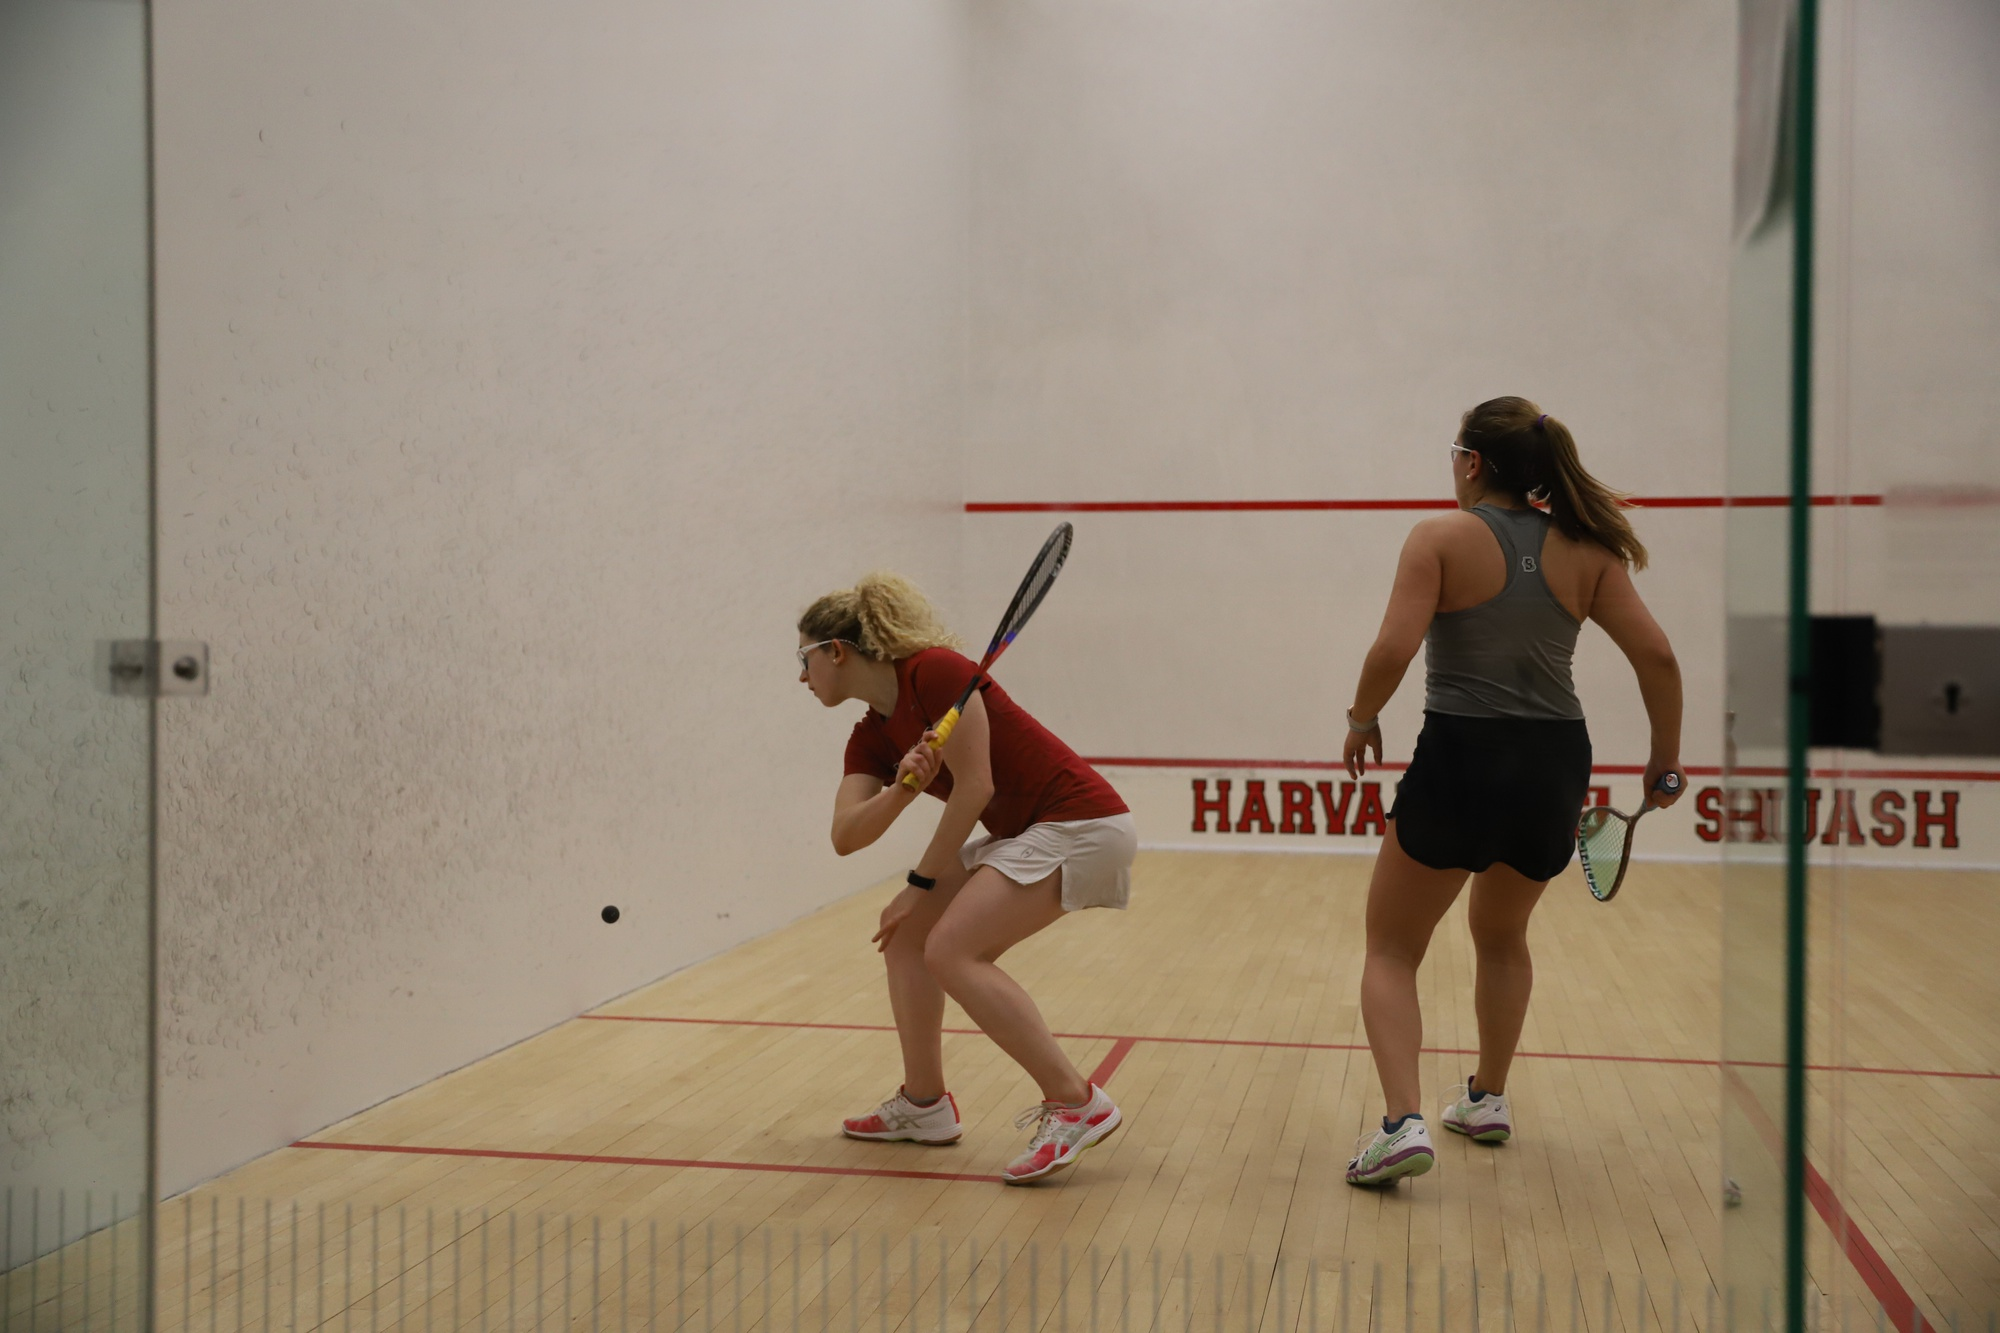 Friday's win against No. 13 Brown (pictured above) and Sunday's triumph versus No. 4 Yale would mark the Crimson's 12th and 13th victories against ranked opponents, helping Harvard to its perfect 13-0 record. Feb. 15 will break the ranked opponent streak for the Crimson as the team squares off with an unranked foe for the first time this season against the Big Red of Cornell.